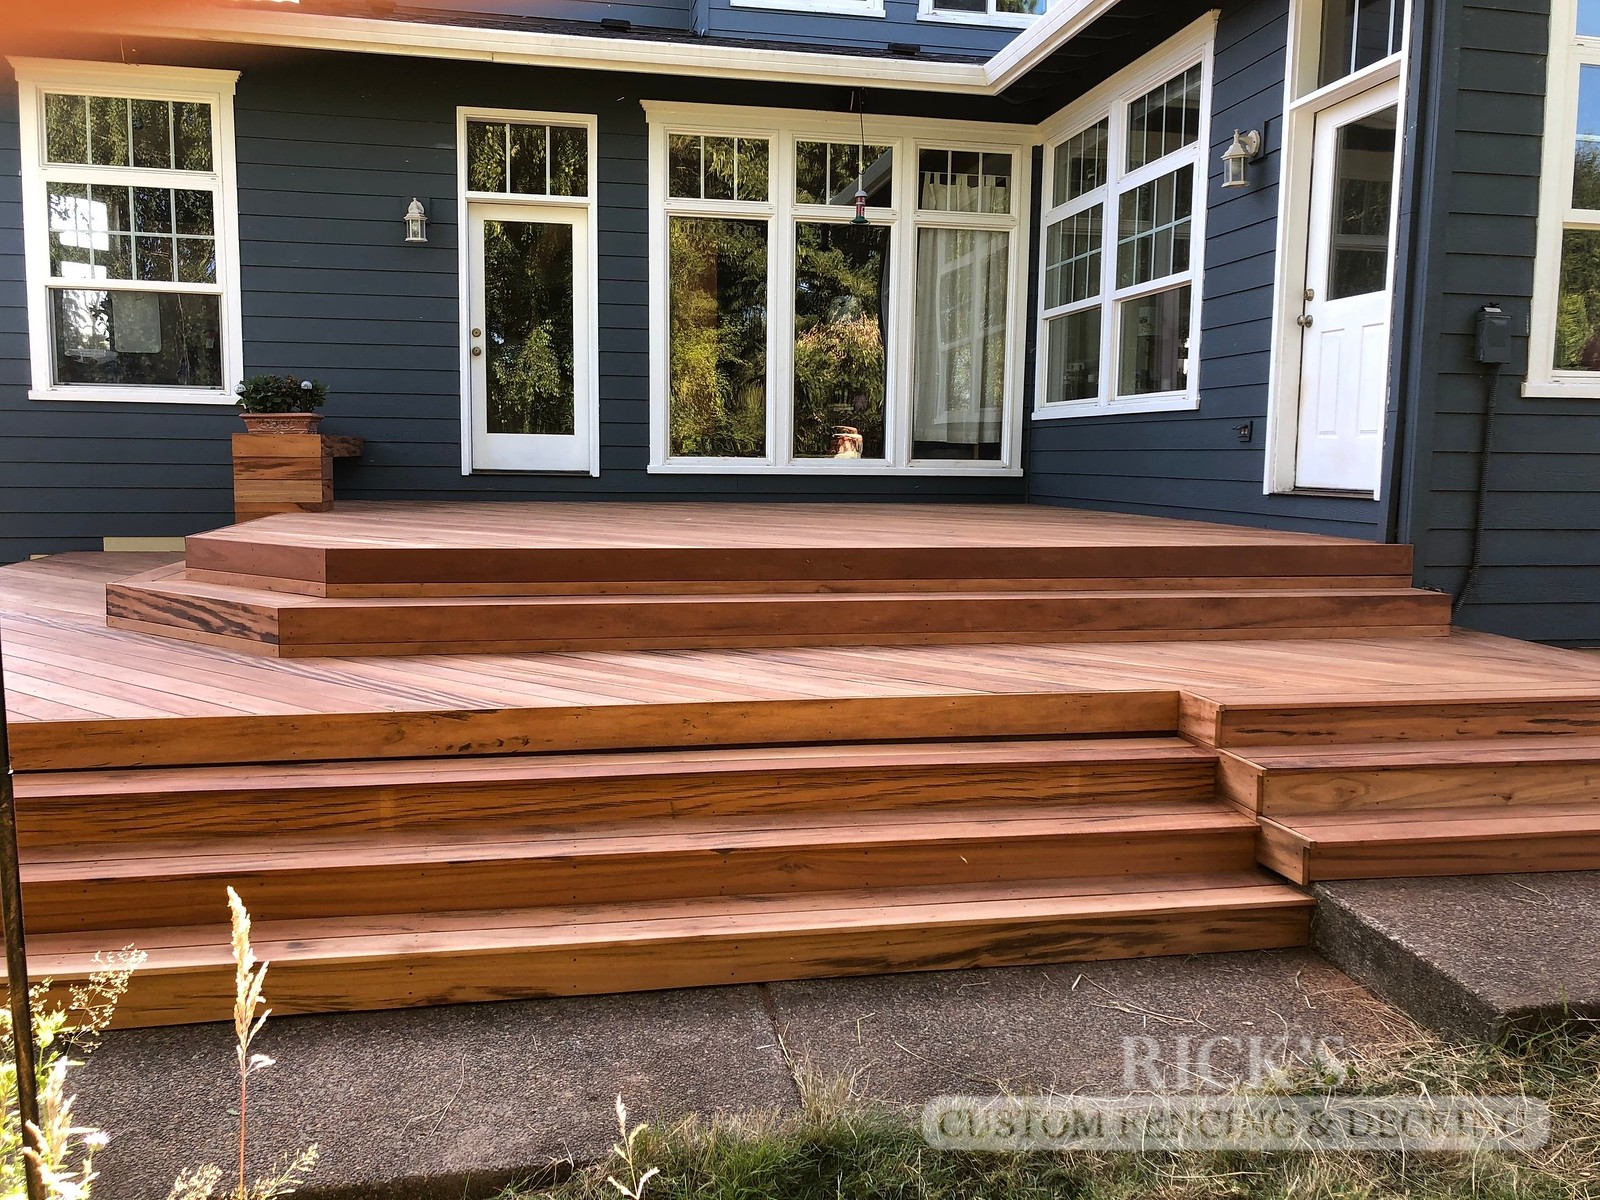 1130 - TigerWood Hardwood Decking